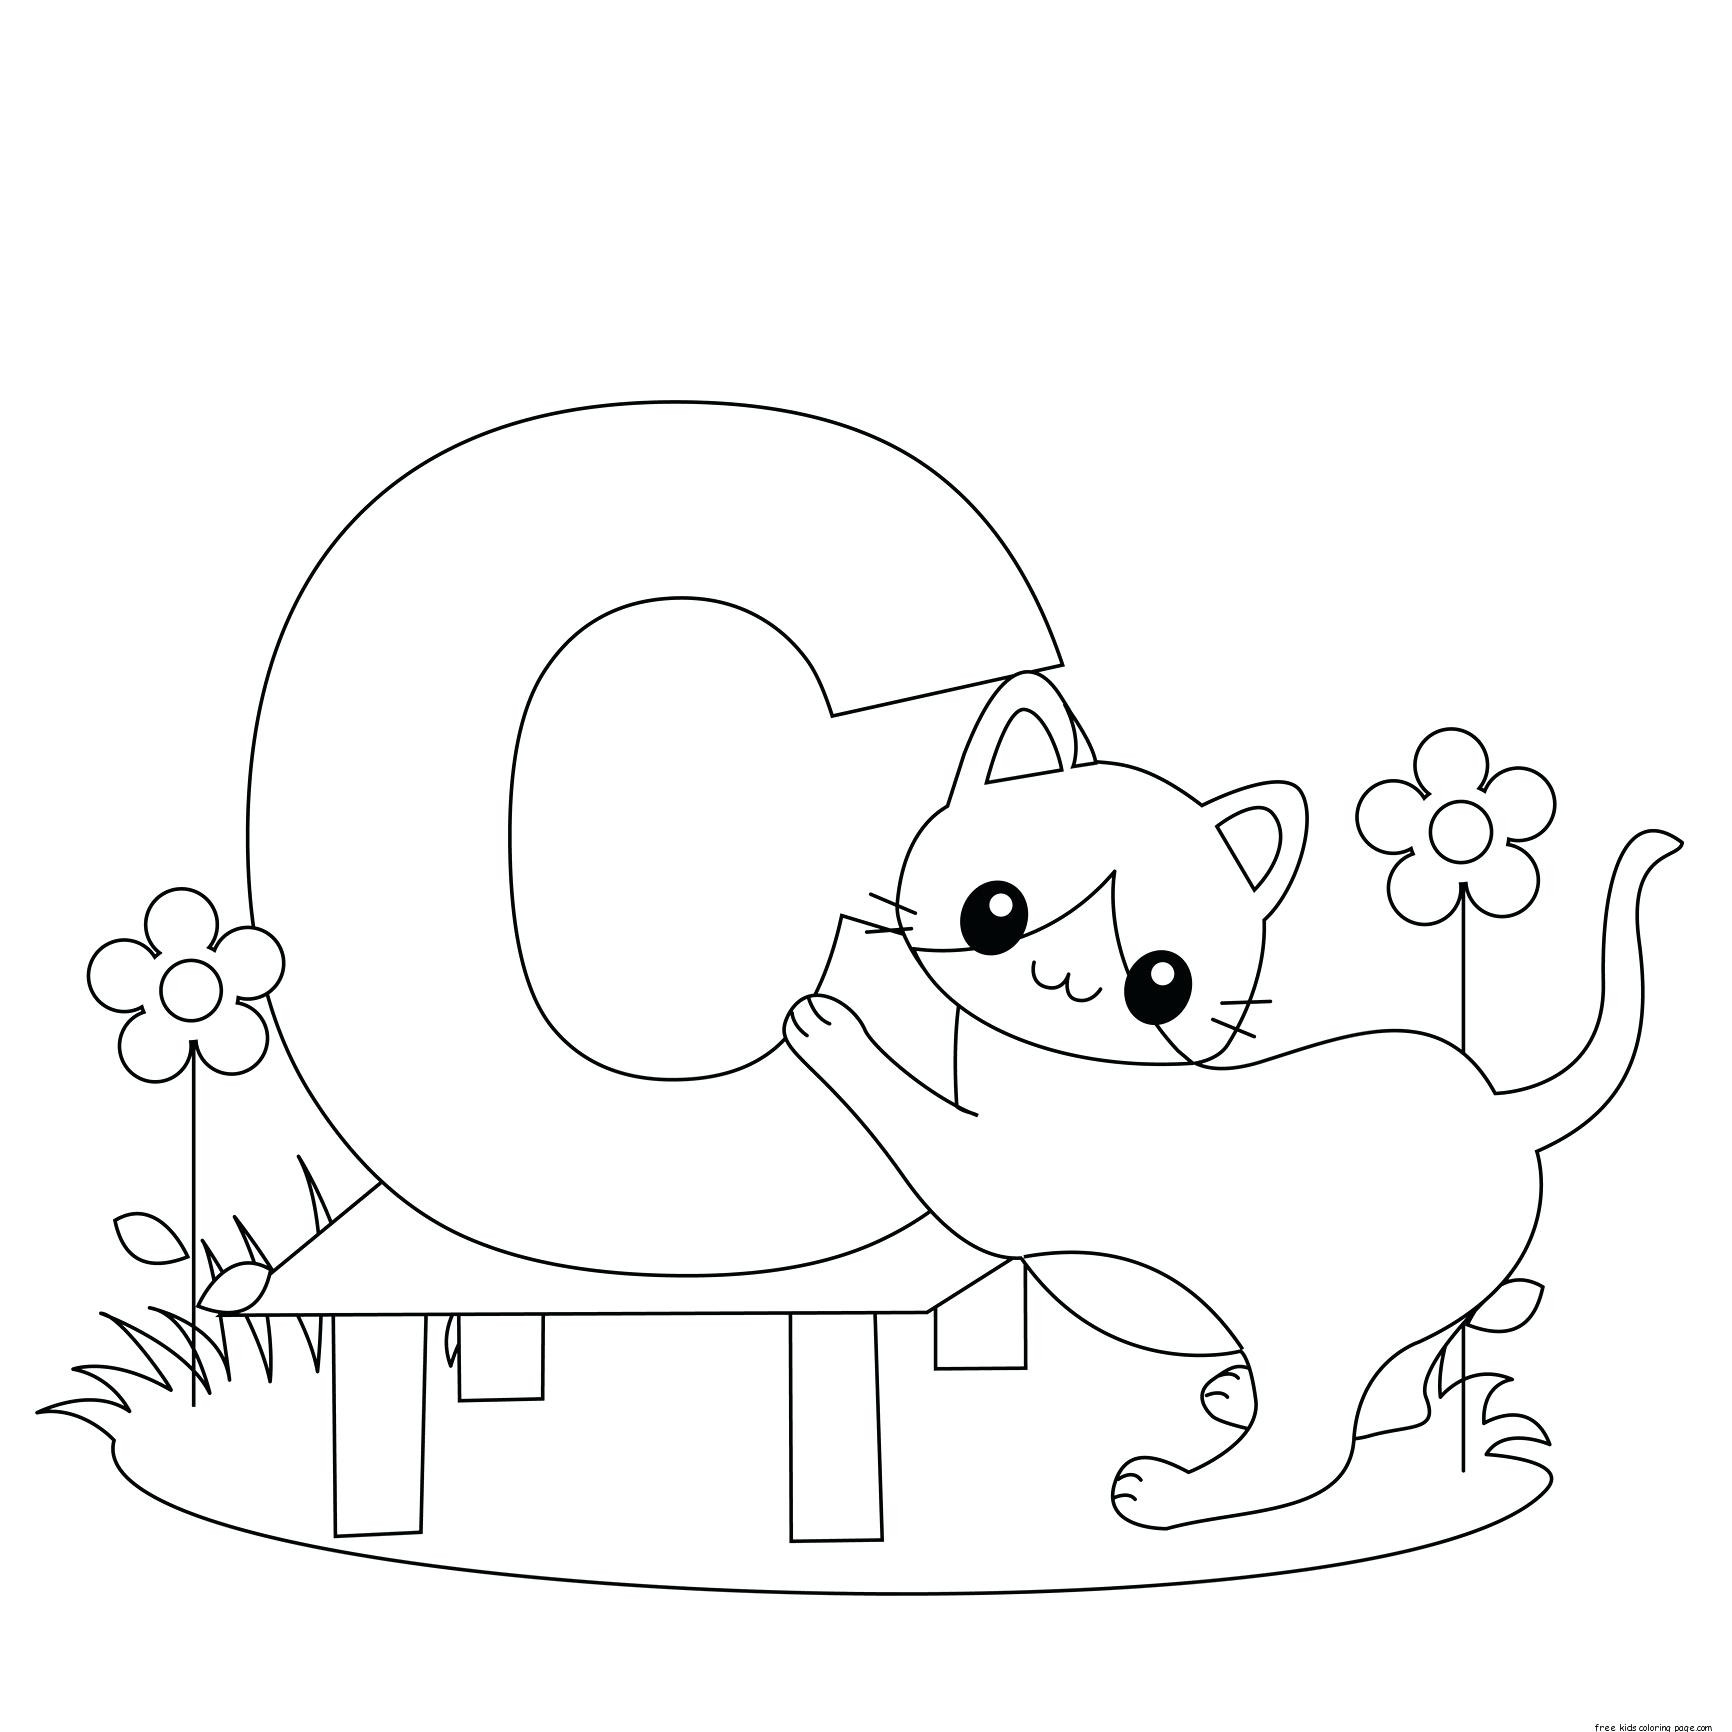 Coloring Pages : Alphabet Coloring Pages For Toddlers within Alphabet Coloring Worksheets For Kindergarten